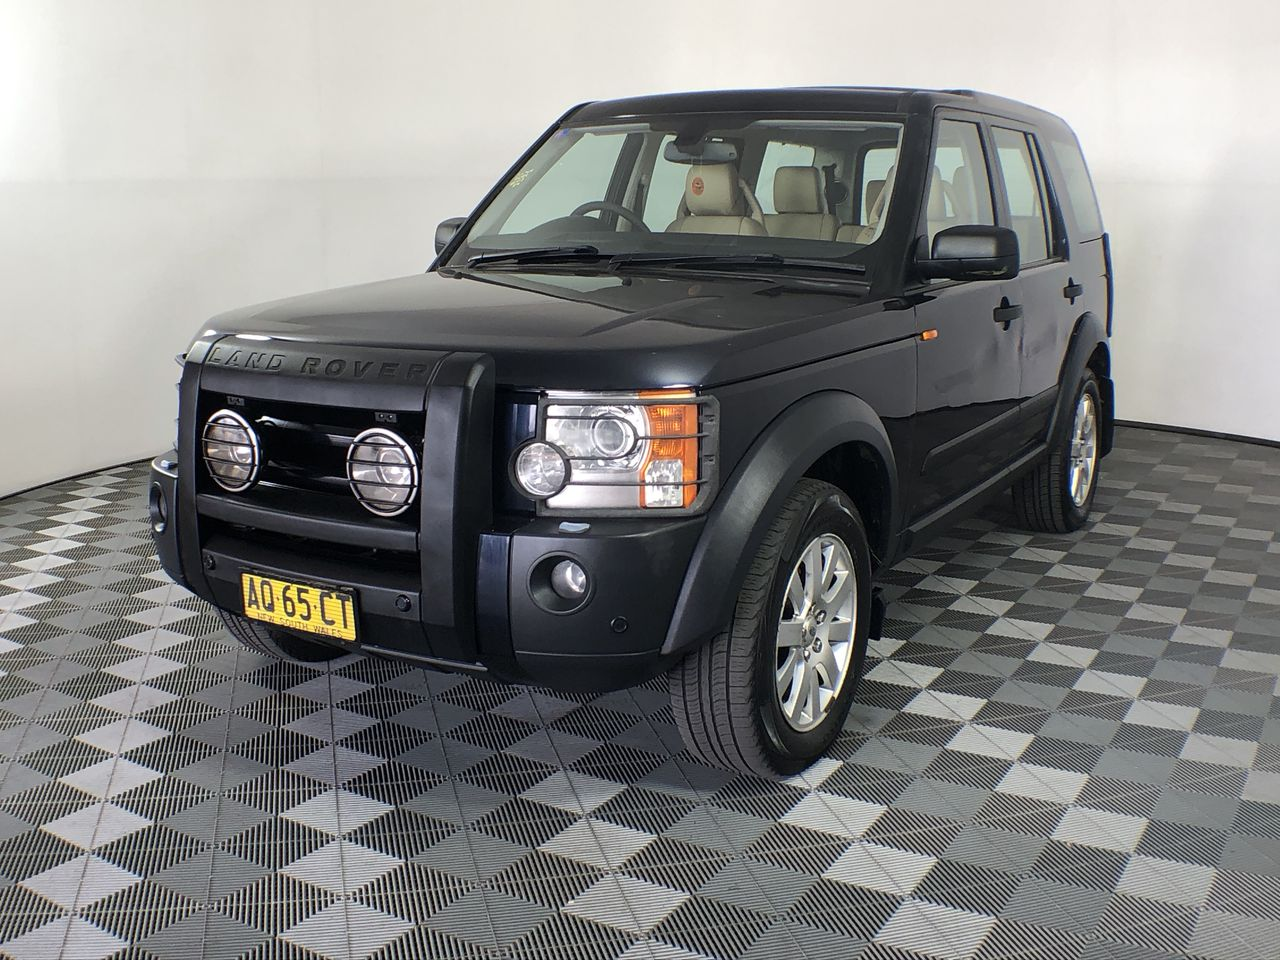 2005 Land Rover Discovery 3 HSE Series III Turbo Diesel Auto 7 Seat Wagon